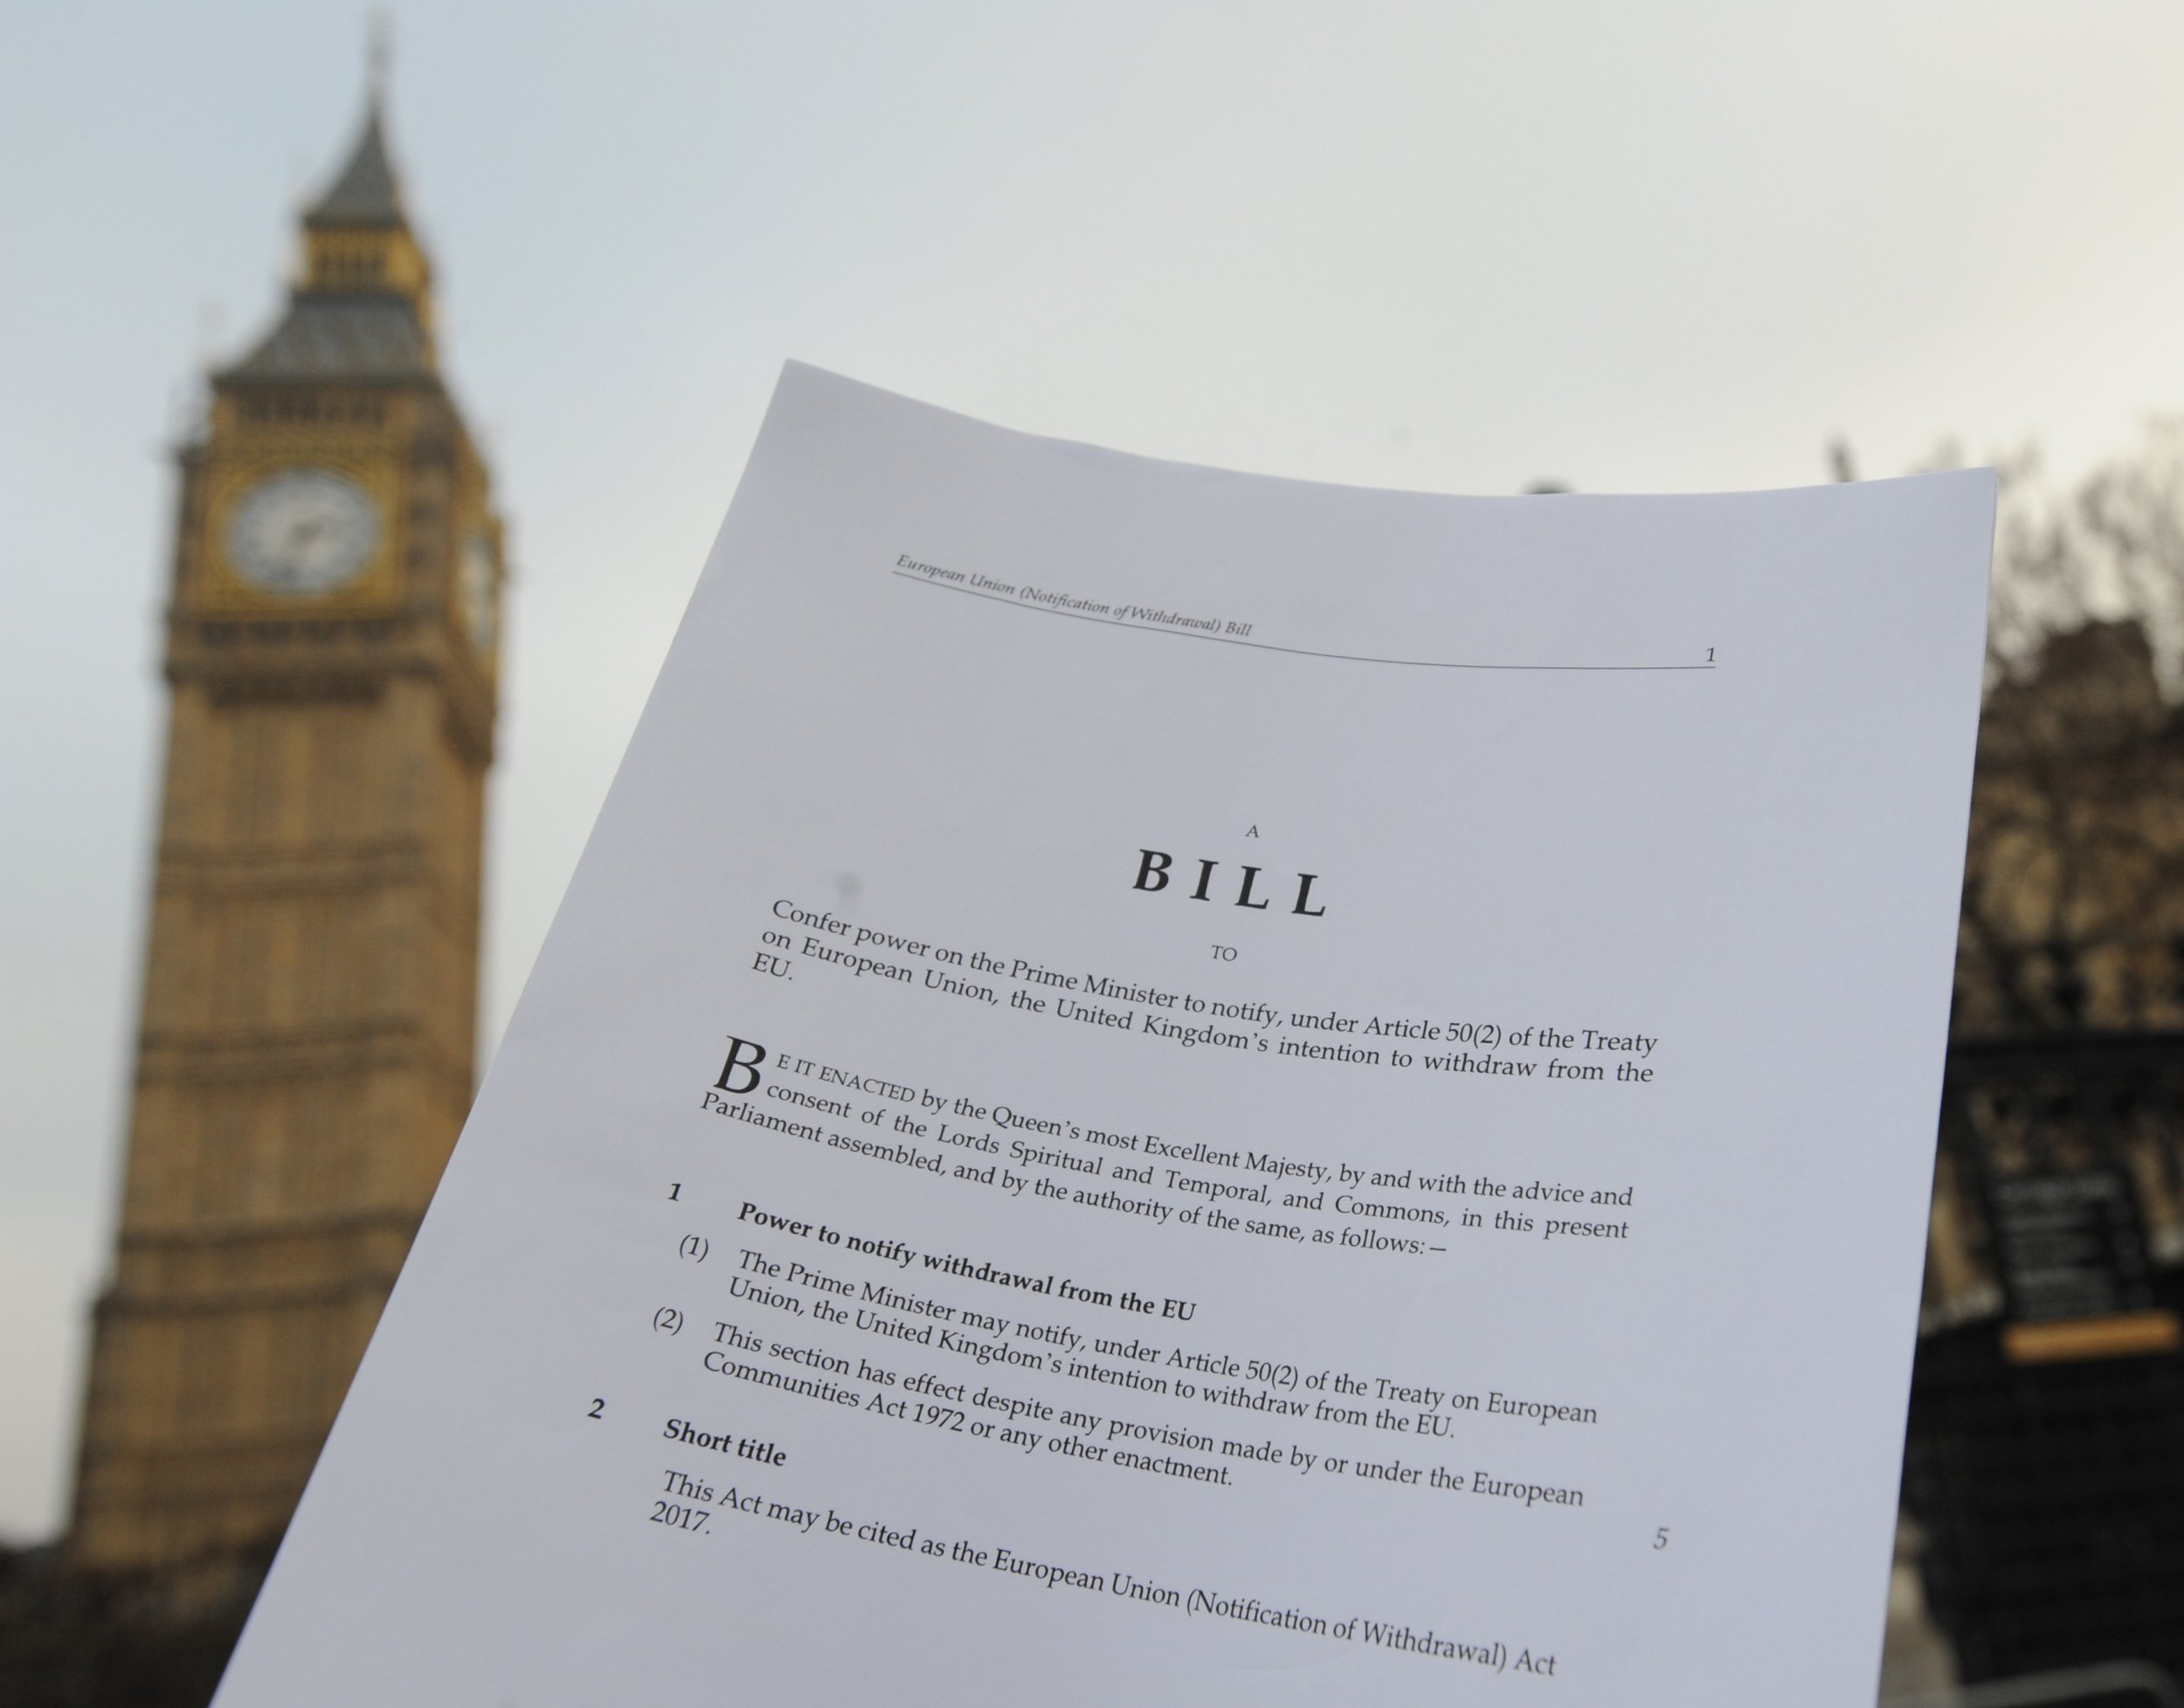 A copy of the Bill to trigger article 50, in front of the Houses of the Parliament in London. PRESS ASSOCIATION Photo. Picture date: Thursday January 26, 2017. The European Union (Notification of Withdrawal) Bill will face its first test next week, with debates on Tuesday and Wednesday. See PA story POLITICS Brexit. Photo credit should read: Nick Ansell/PA Wire